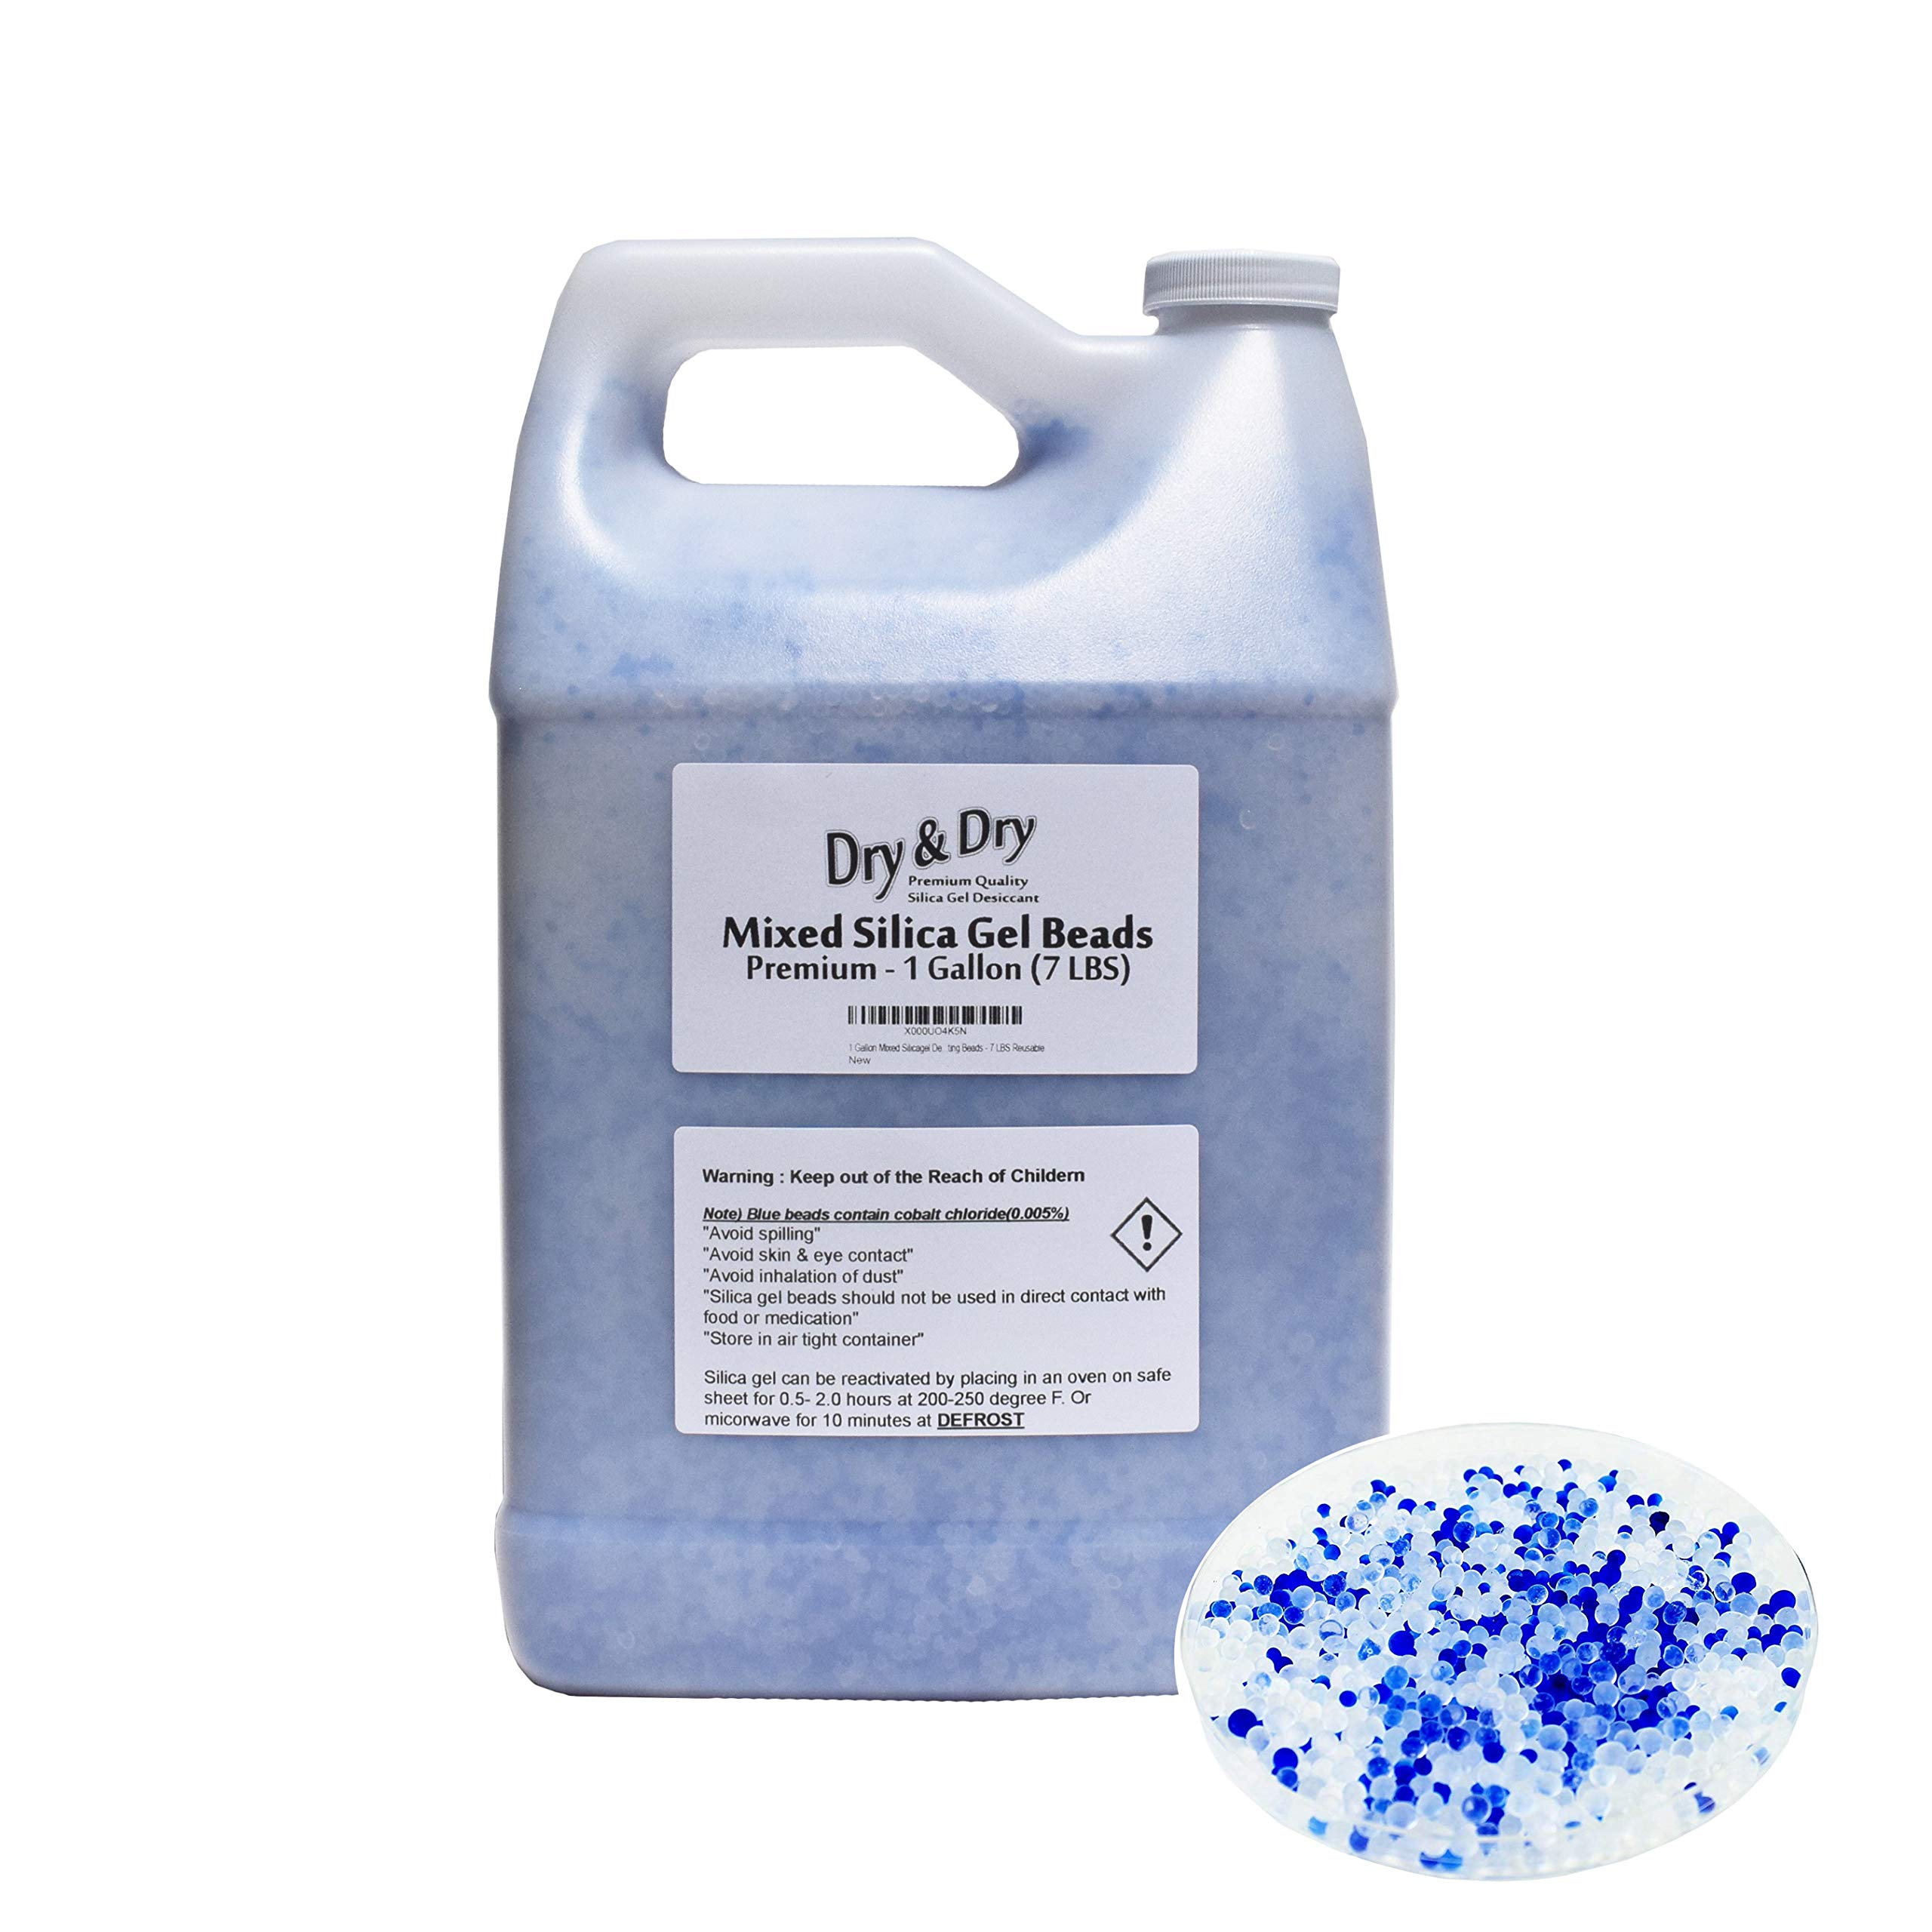 DRY&DRY 1 Gallon Premium Mixed Silicagel Beads with Blue Indicating Beads(Industry Standard 2-4mm) - 7 LBS Reusable